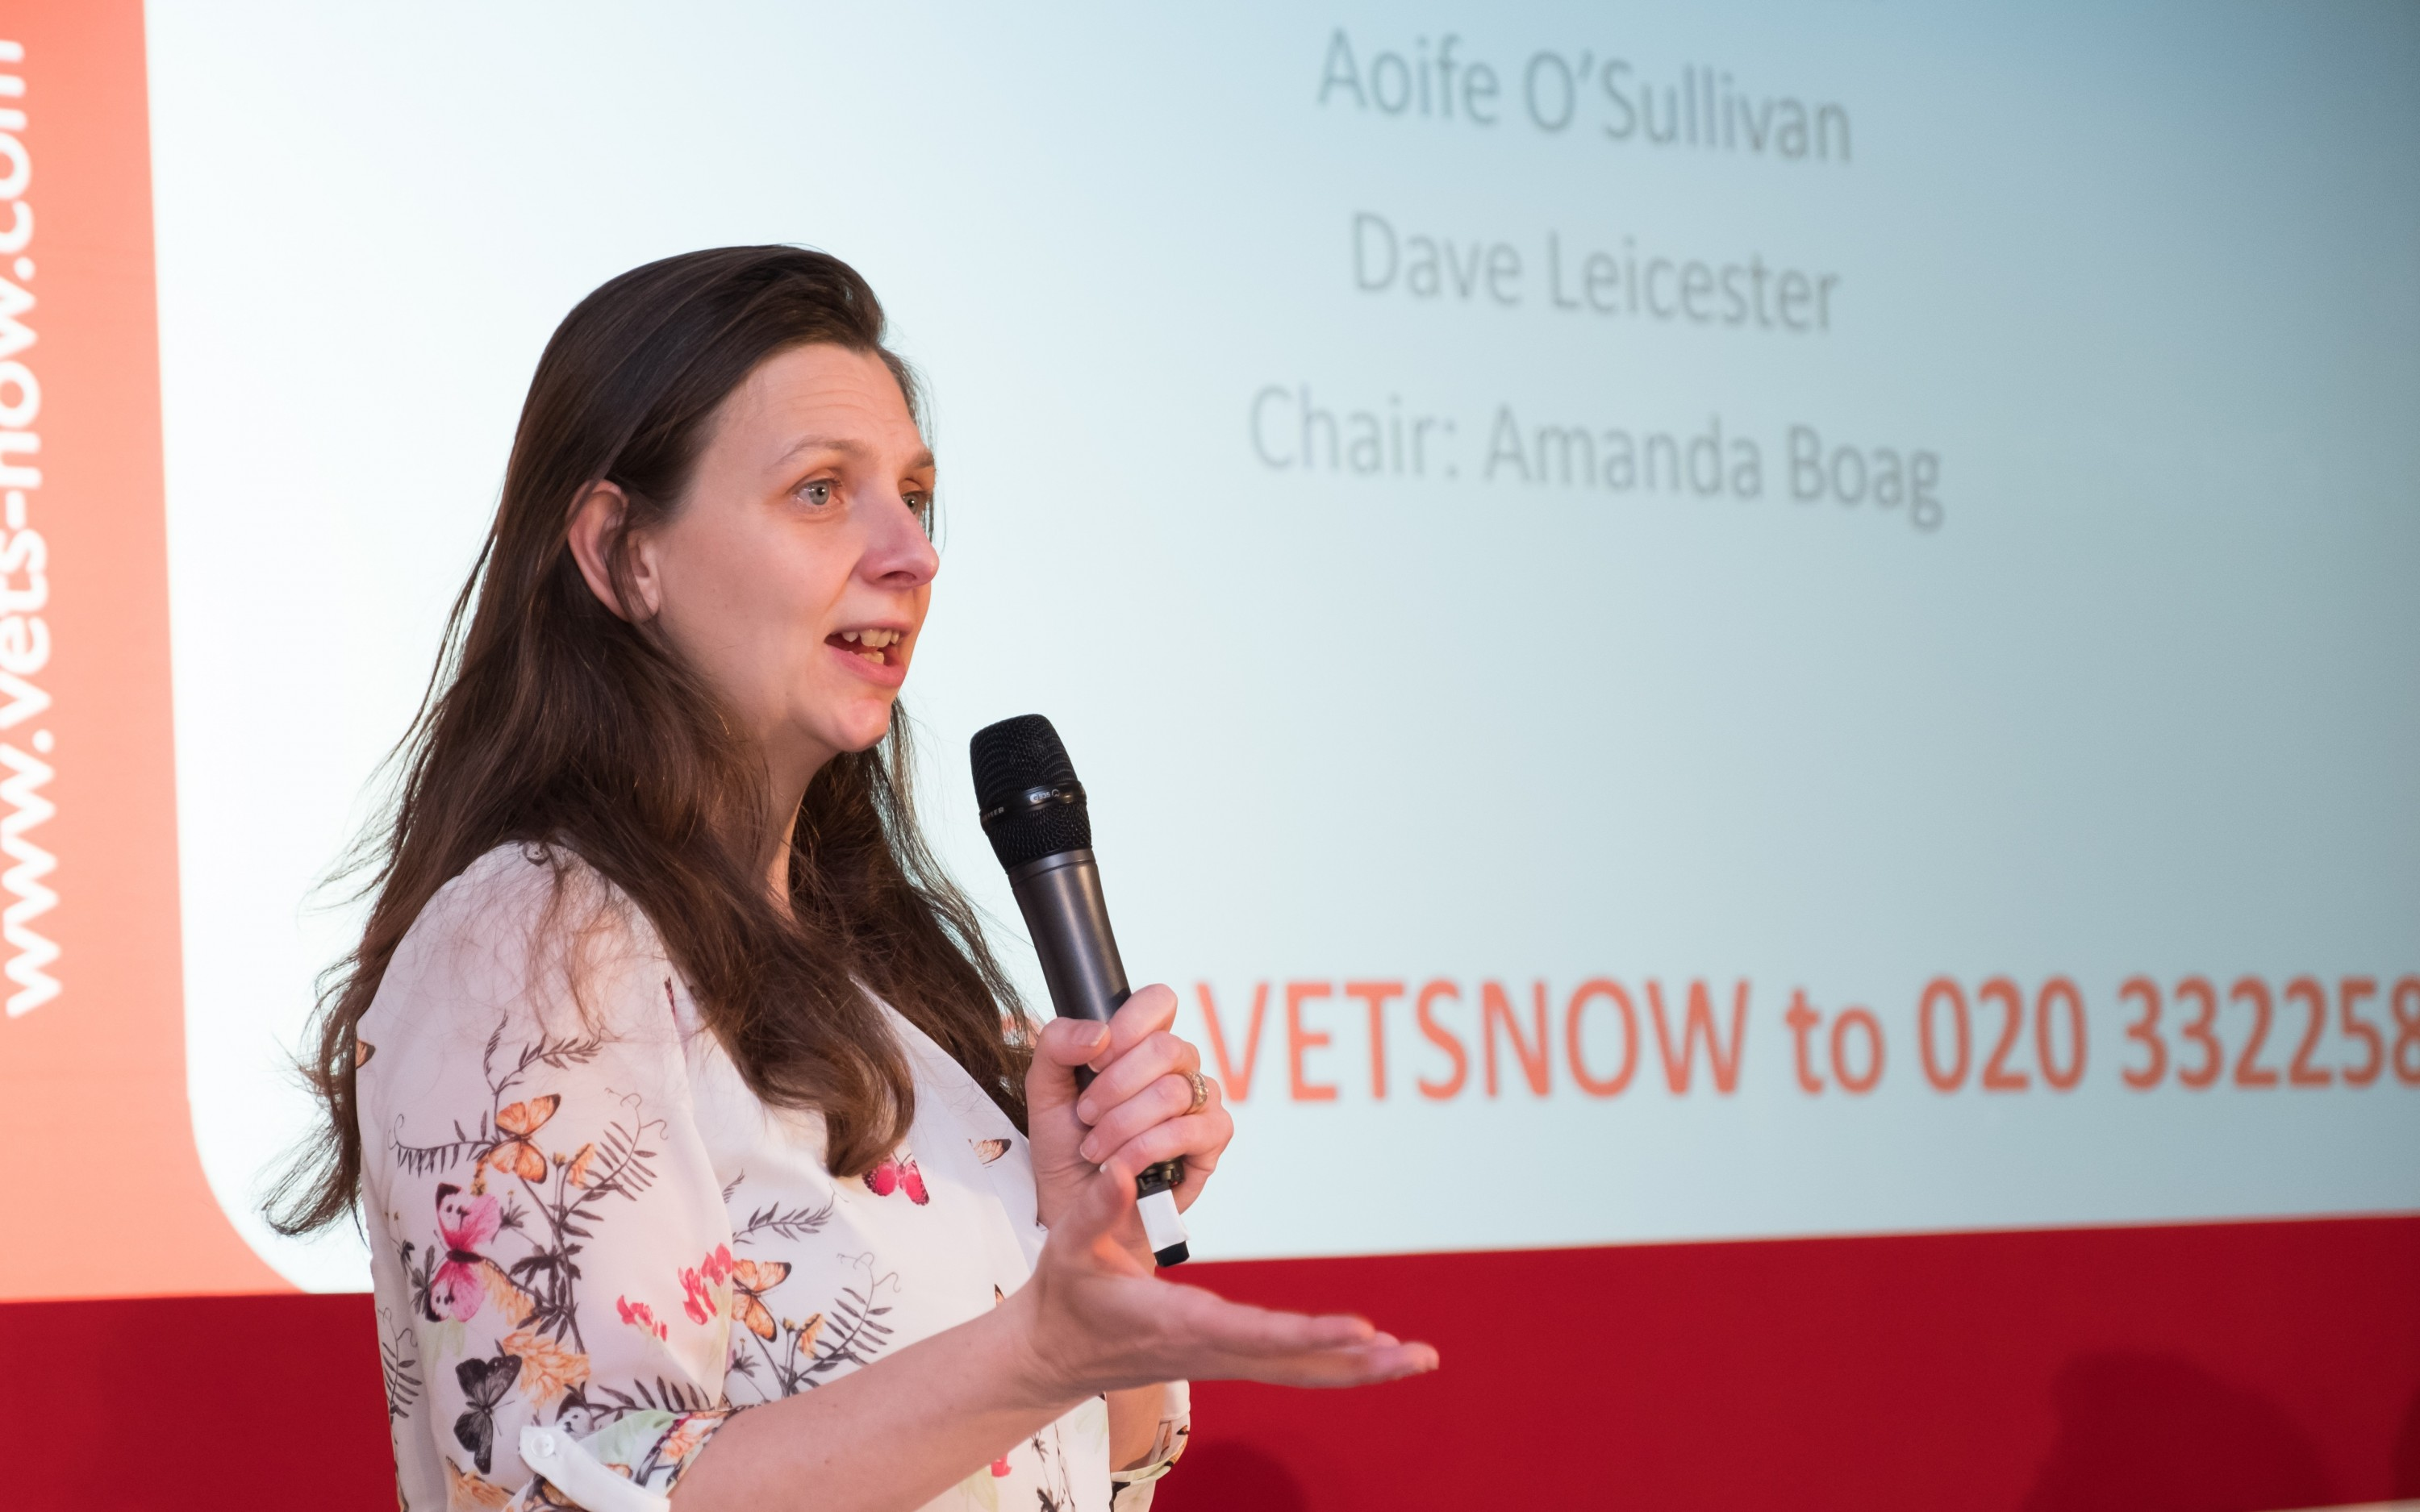 An image of Amanda Boag presenting at Congress for Vets Now page on Learning and development